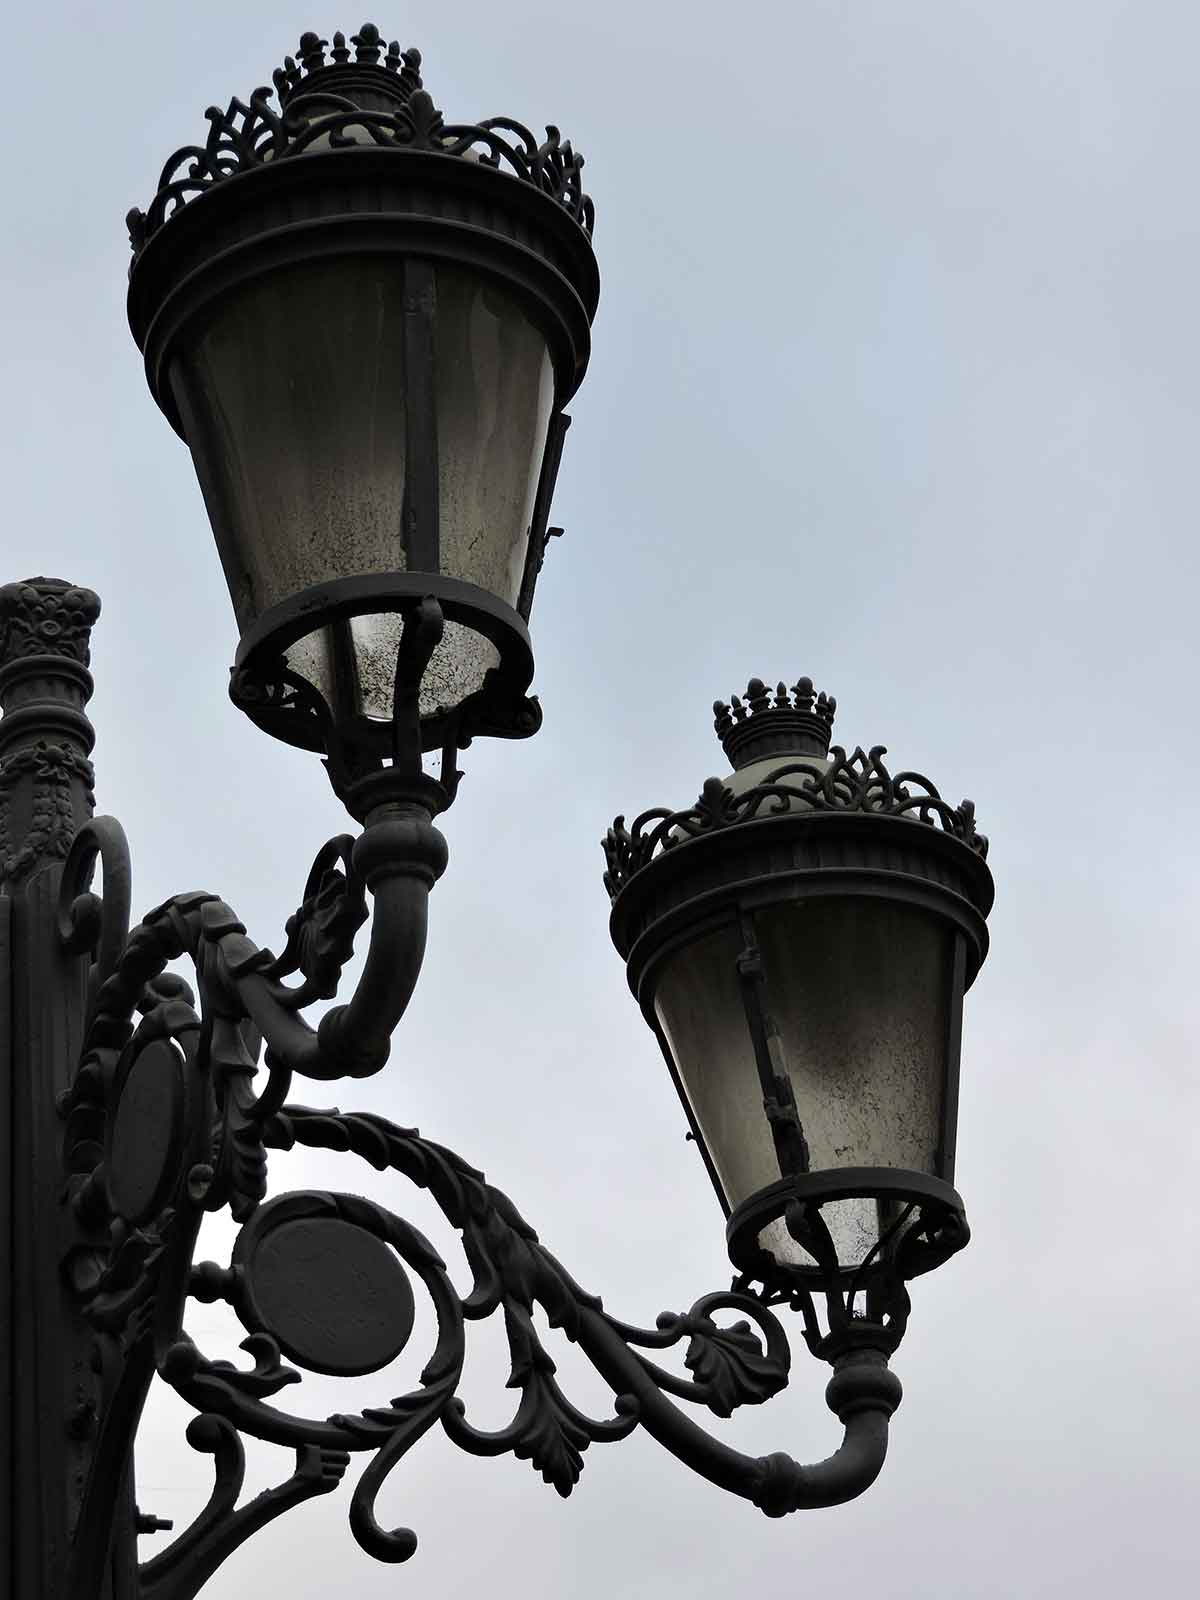 Decorative light post in downtown Ponta Delgada